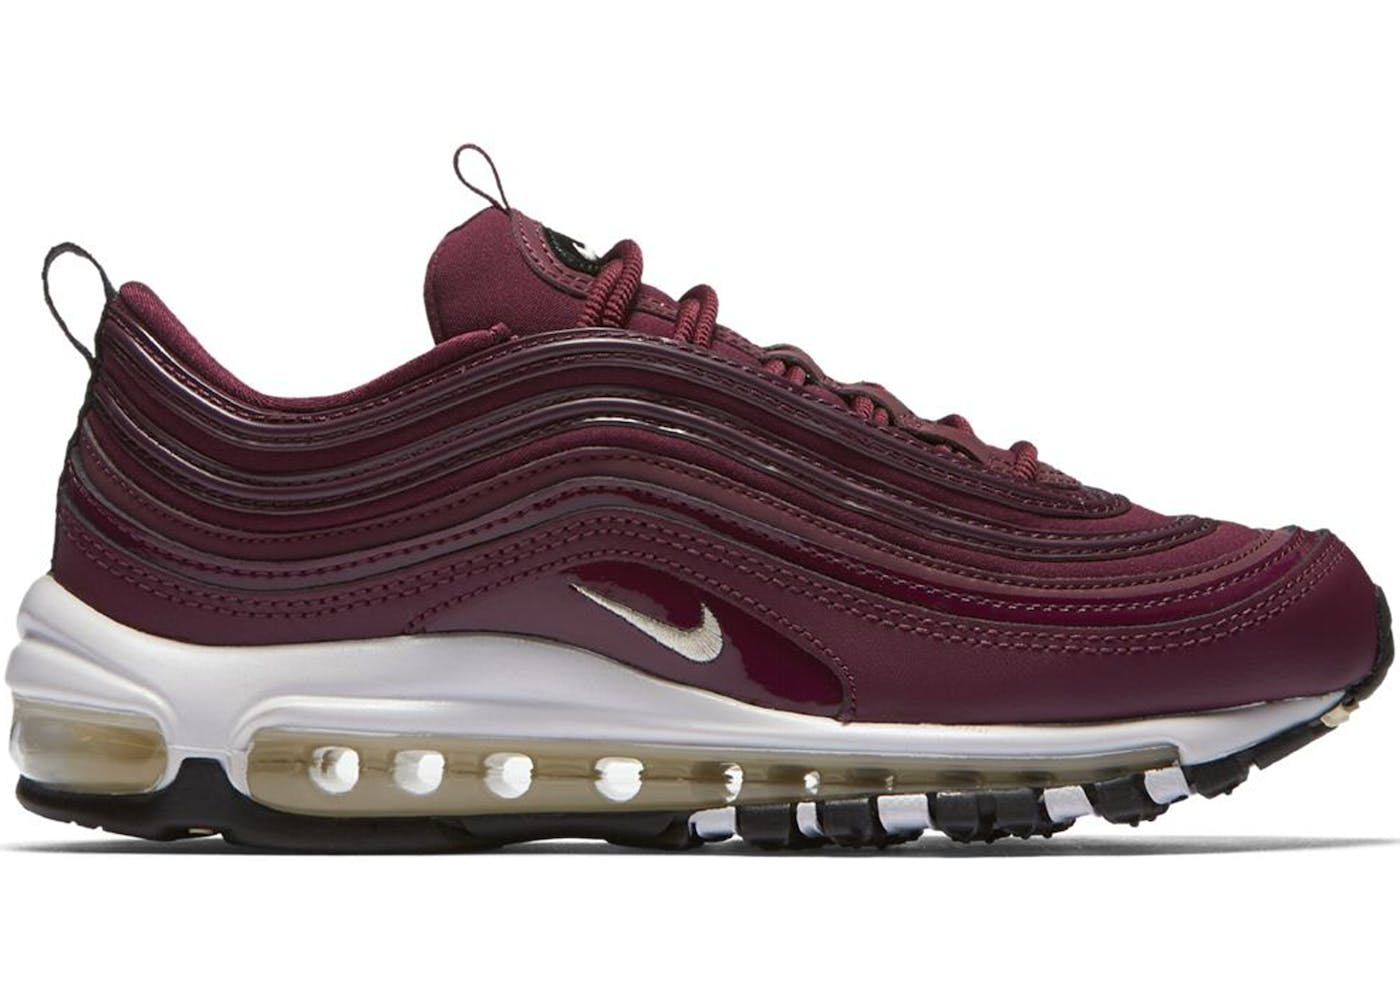 Air Max 97 Bordeaux (W)